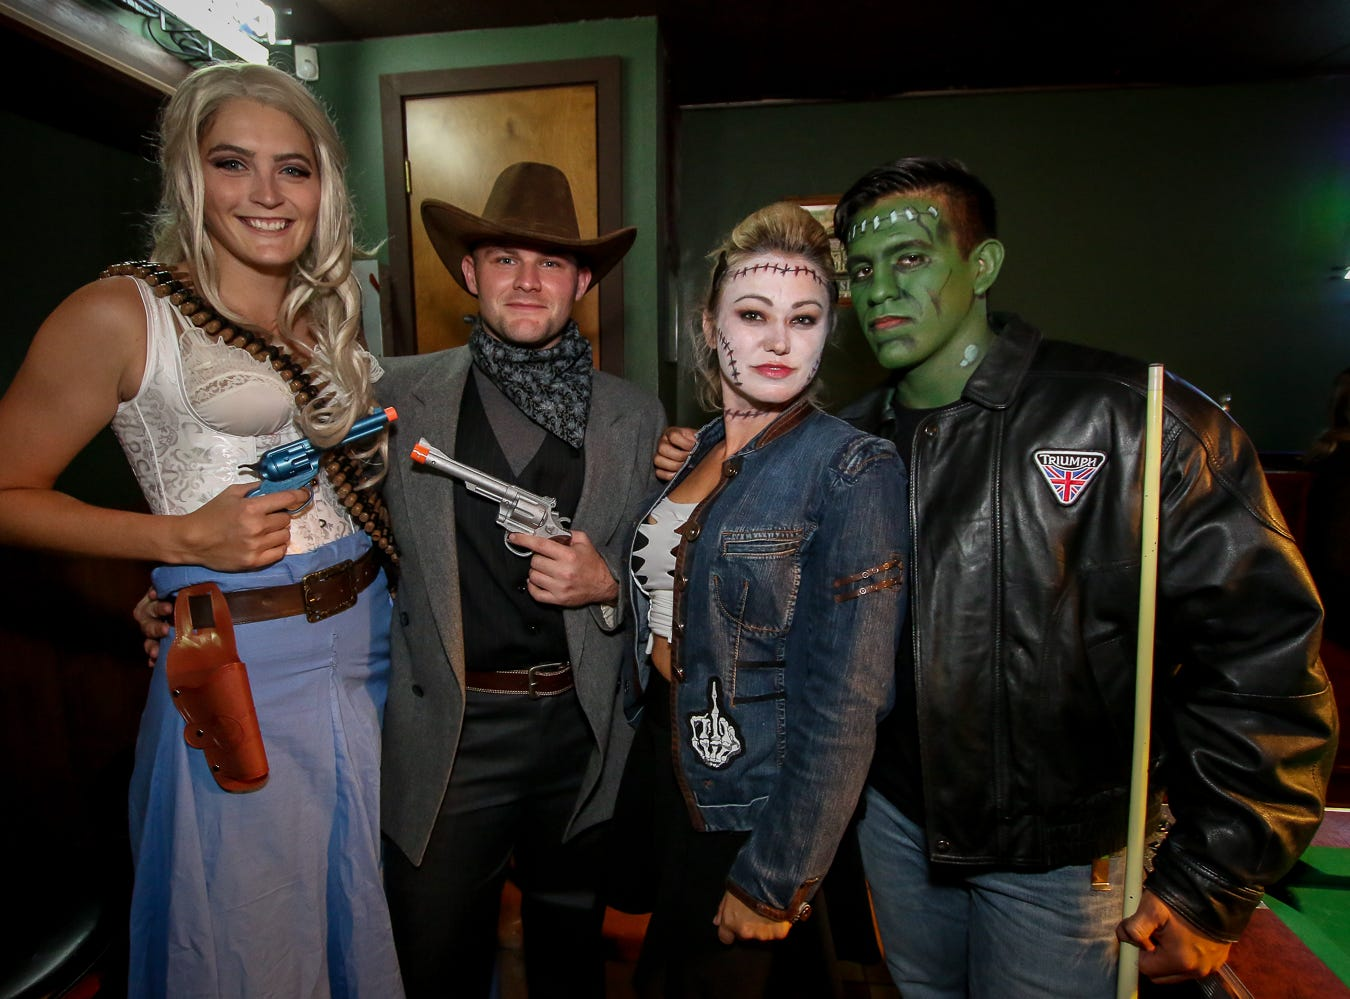 People get into the Halloween spirit at O'Riley's Irish Pub and Seville Quarter on Saturday, October 27, 2018.